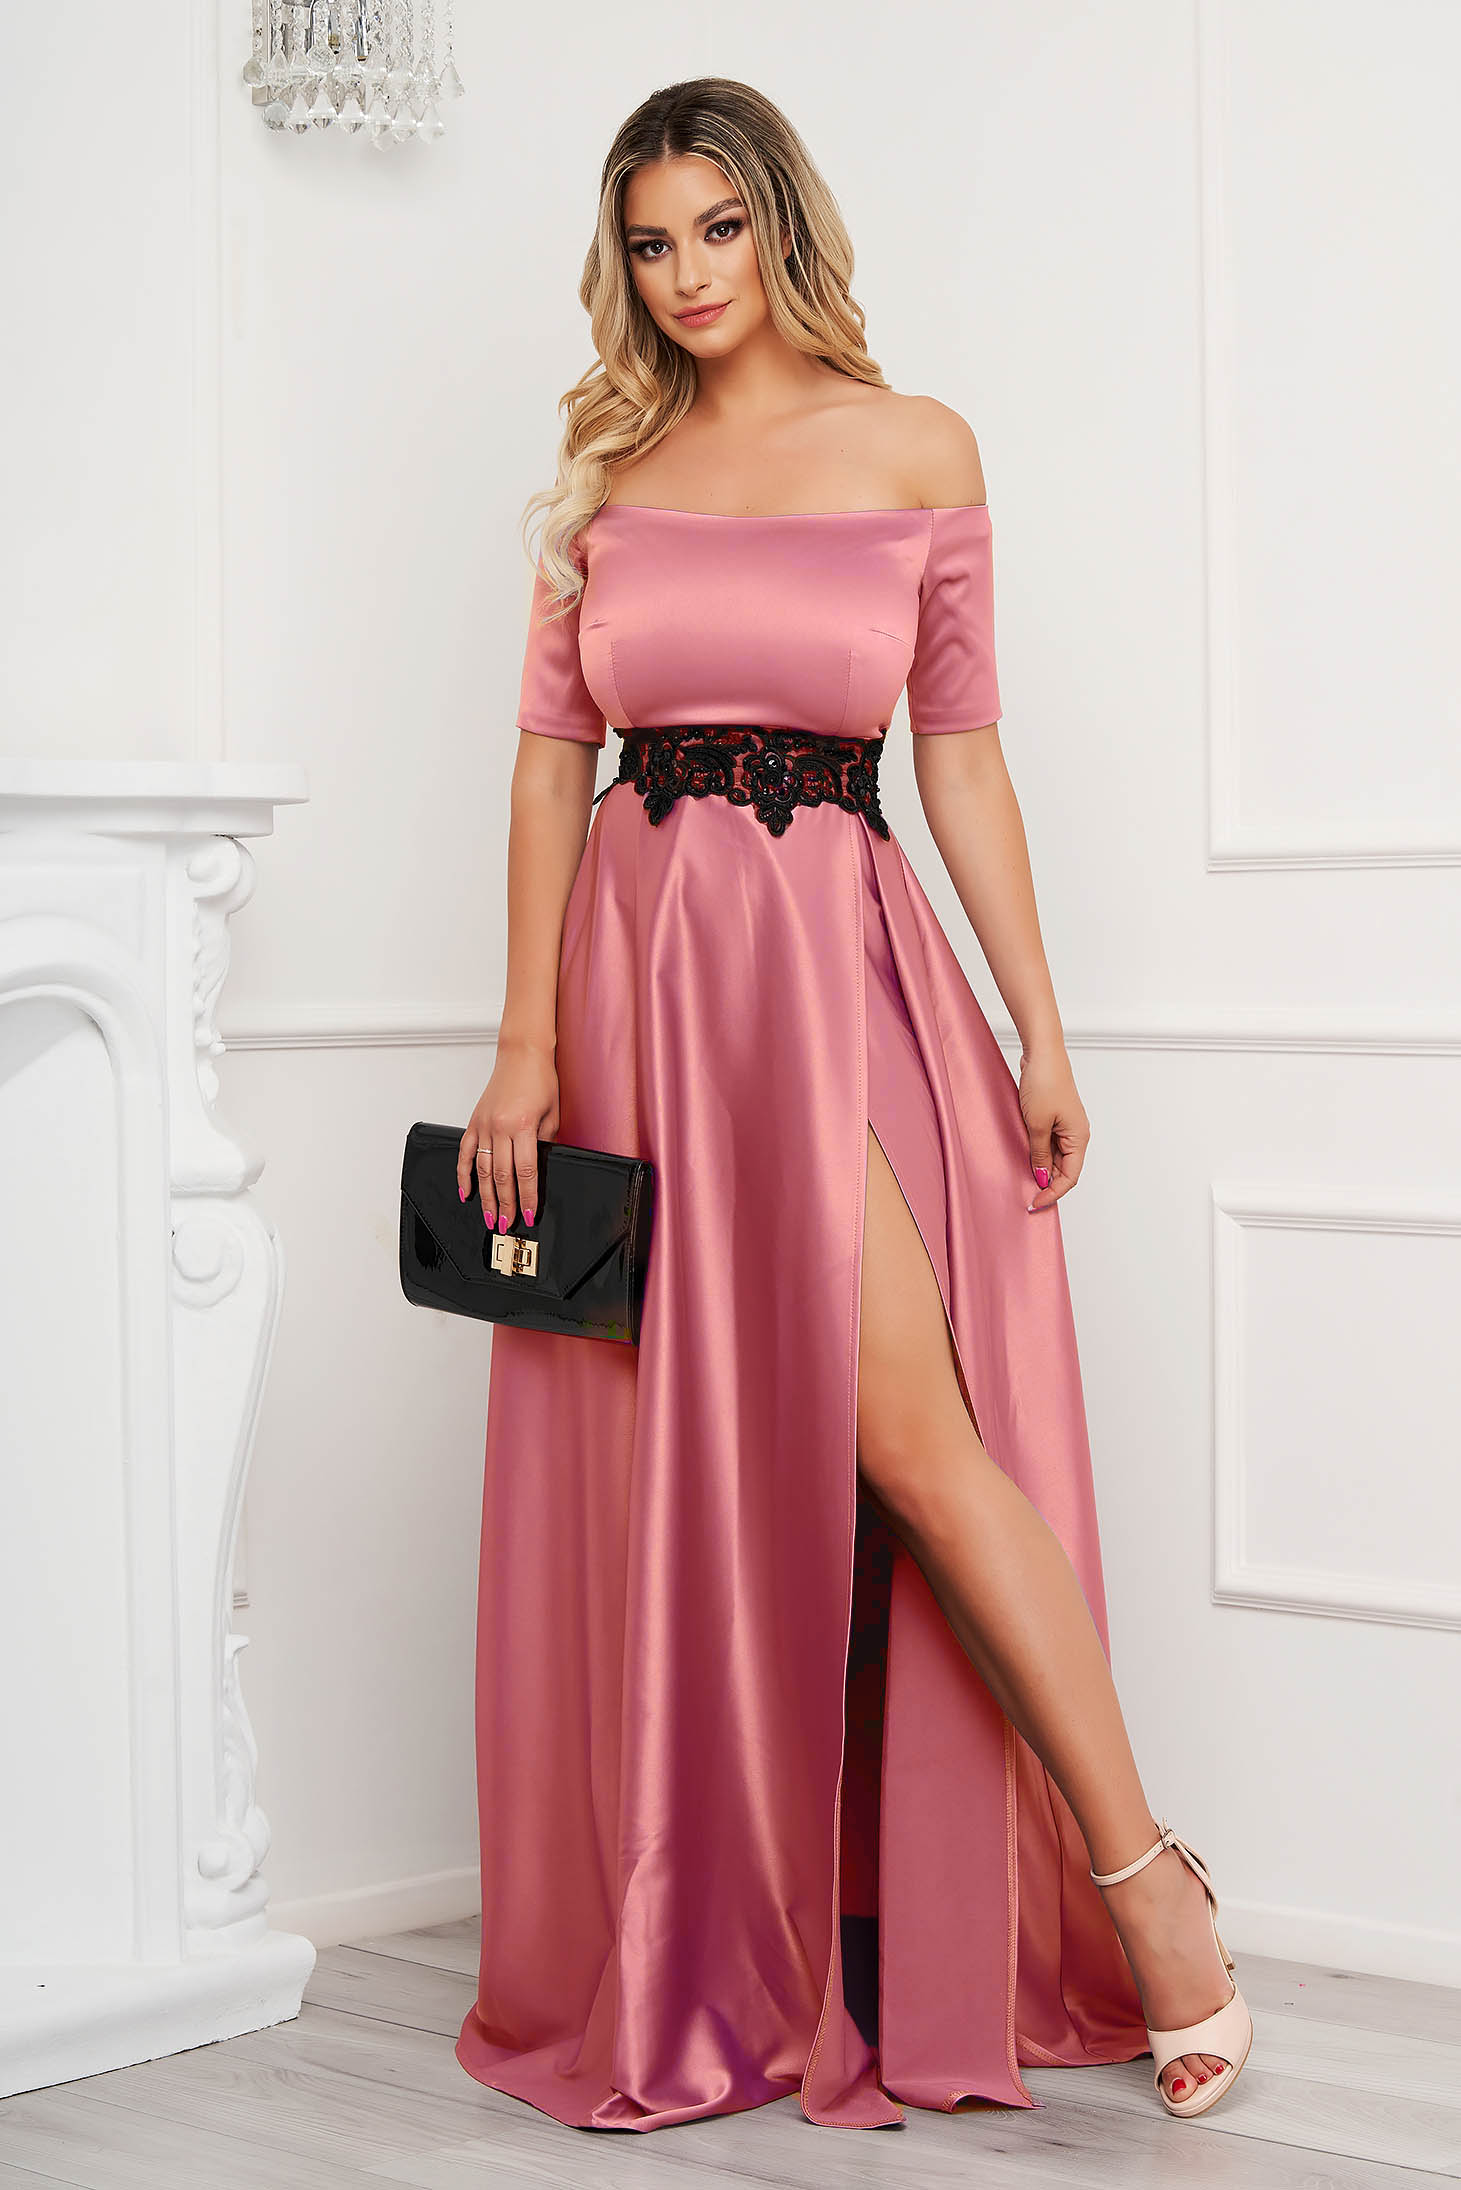 Pink dress from satin cloche occasional with embroidery details on the shoulders slit